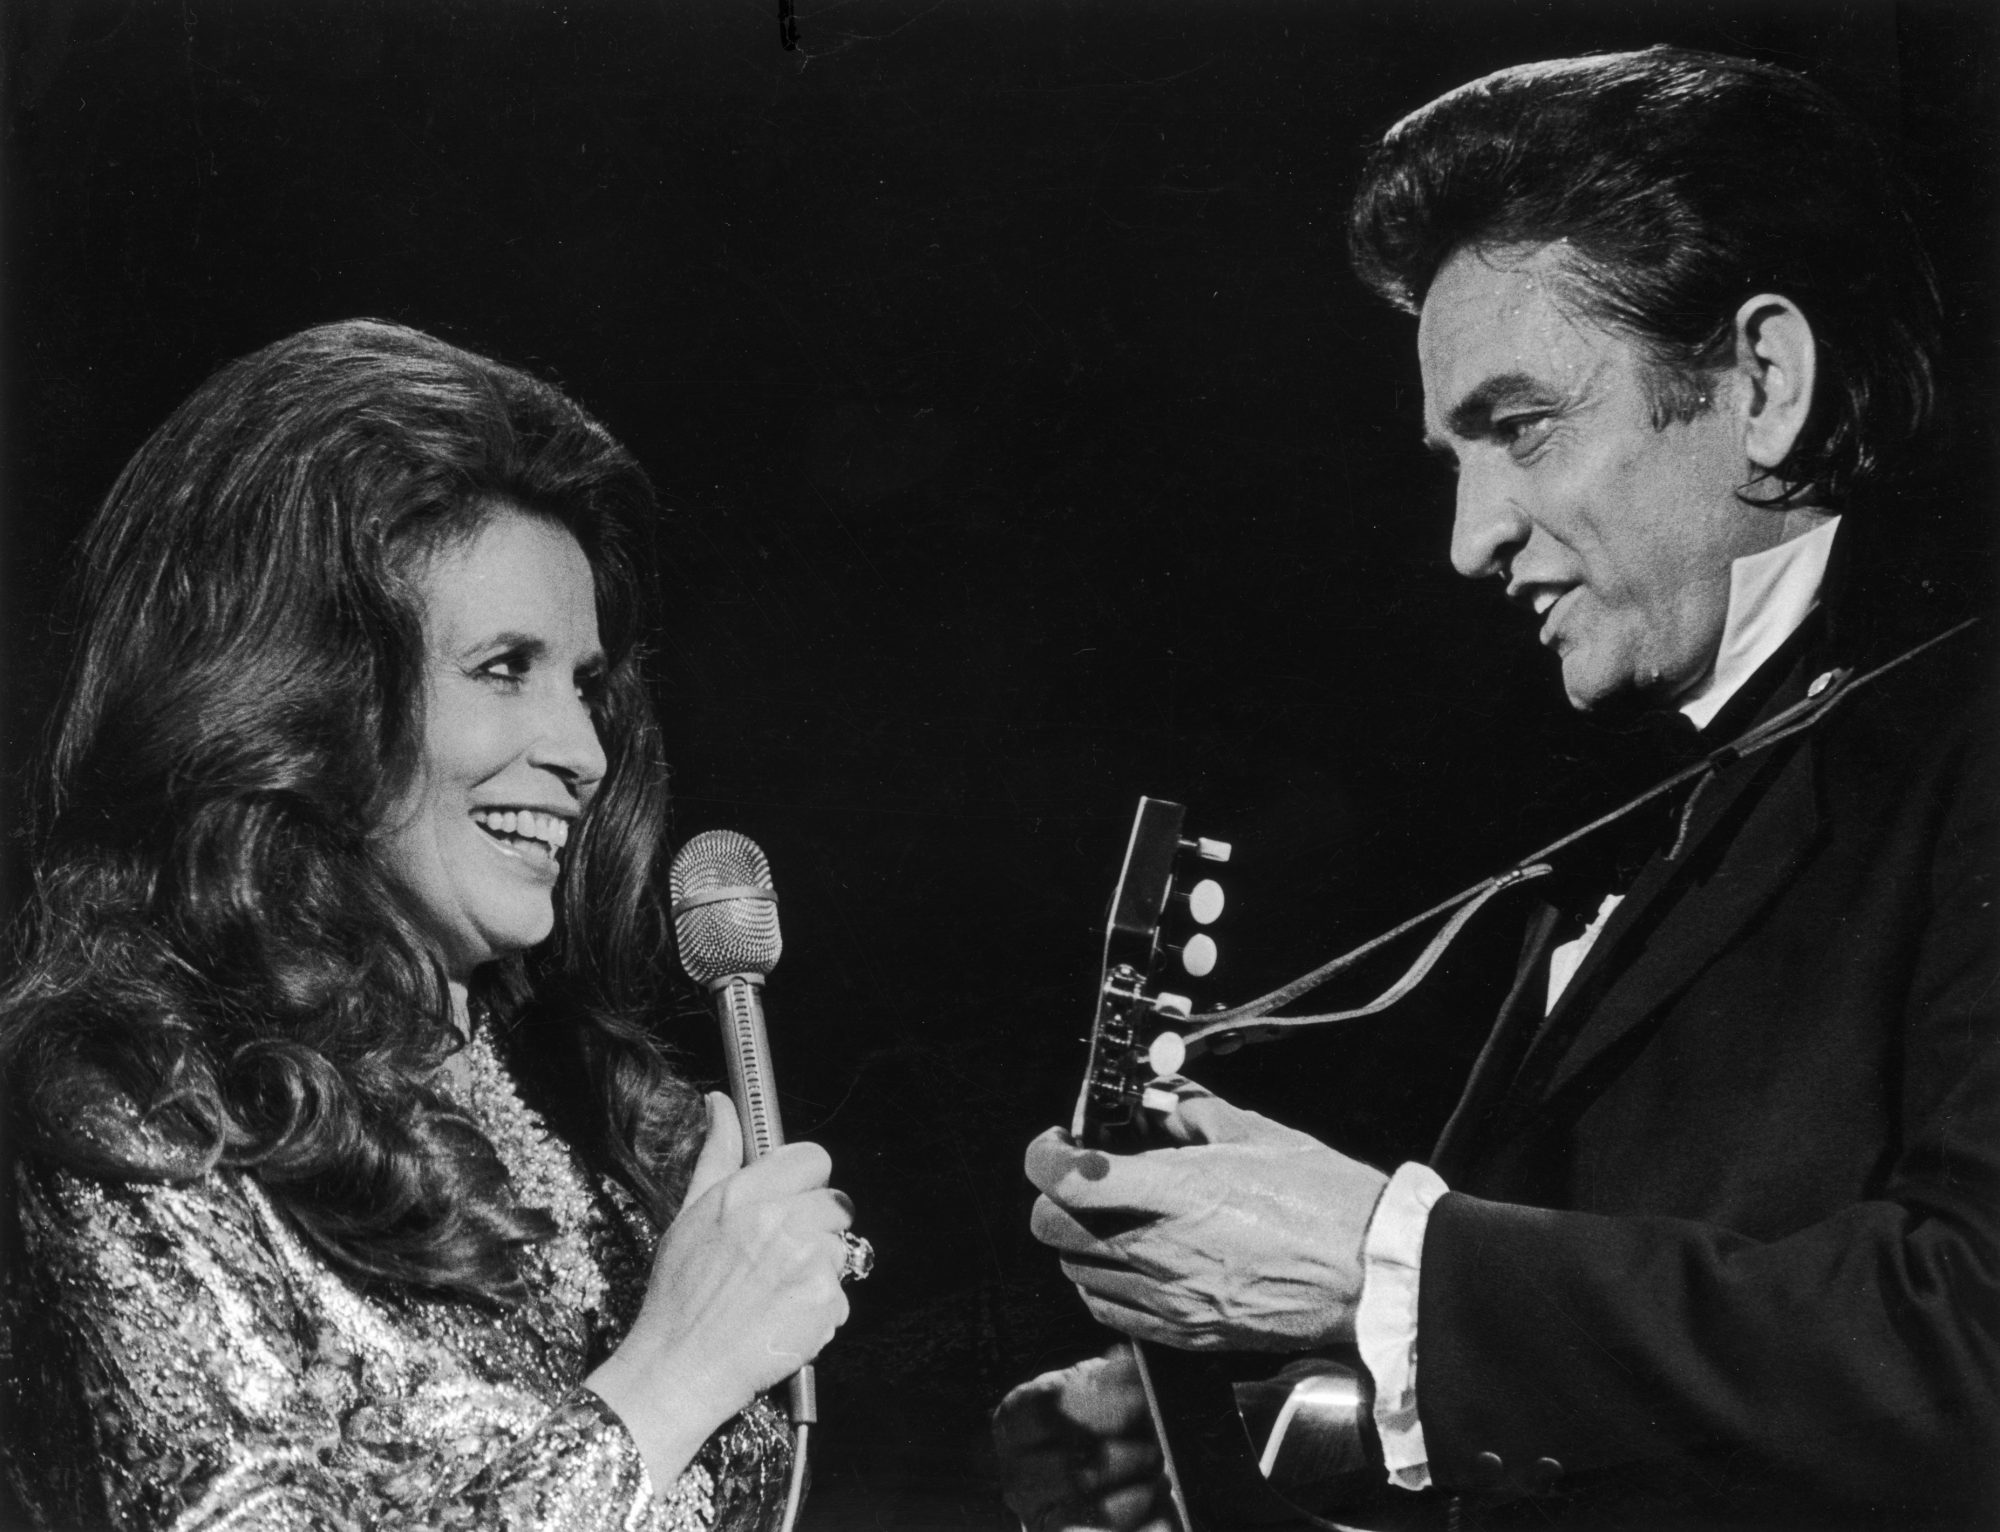 Johnny Cash and June Carter 1975